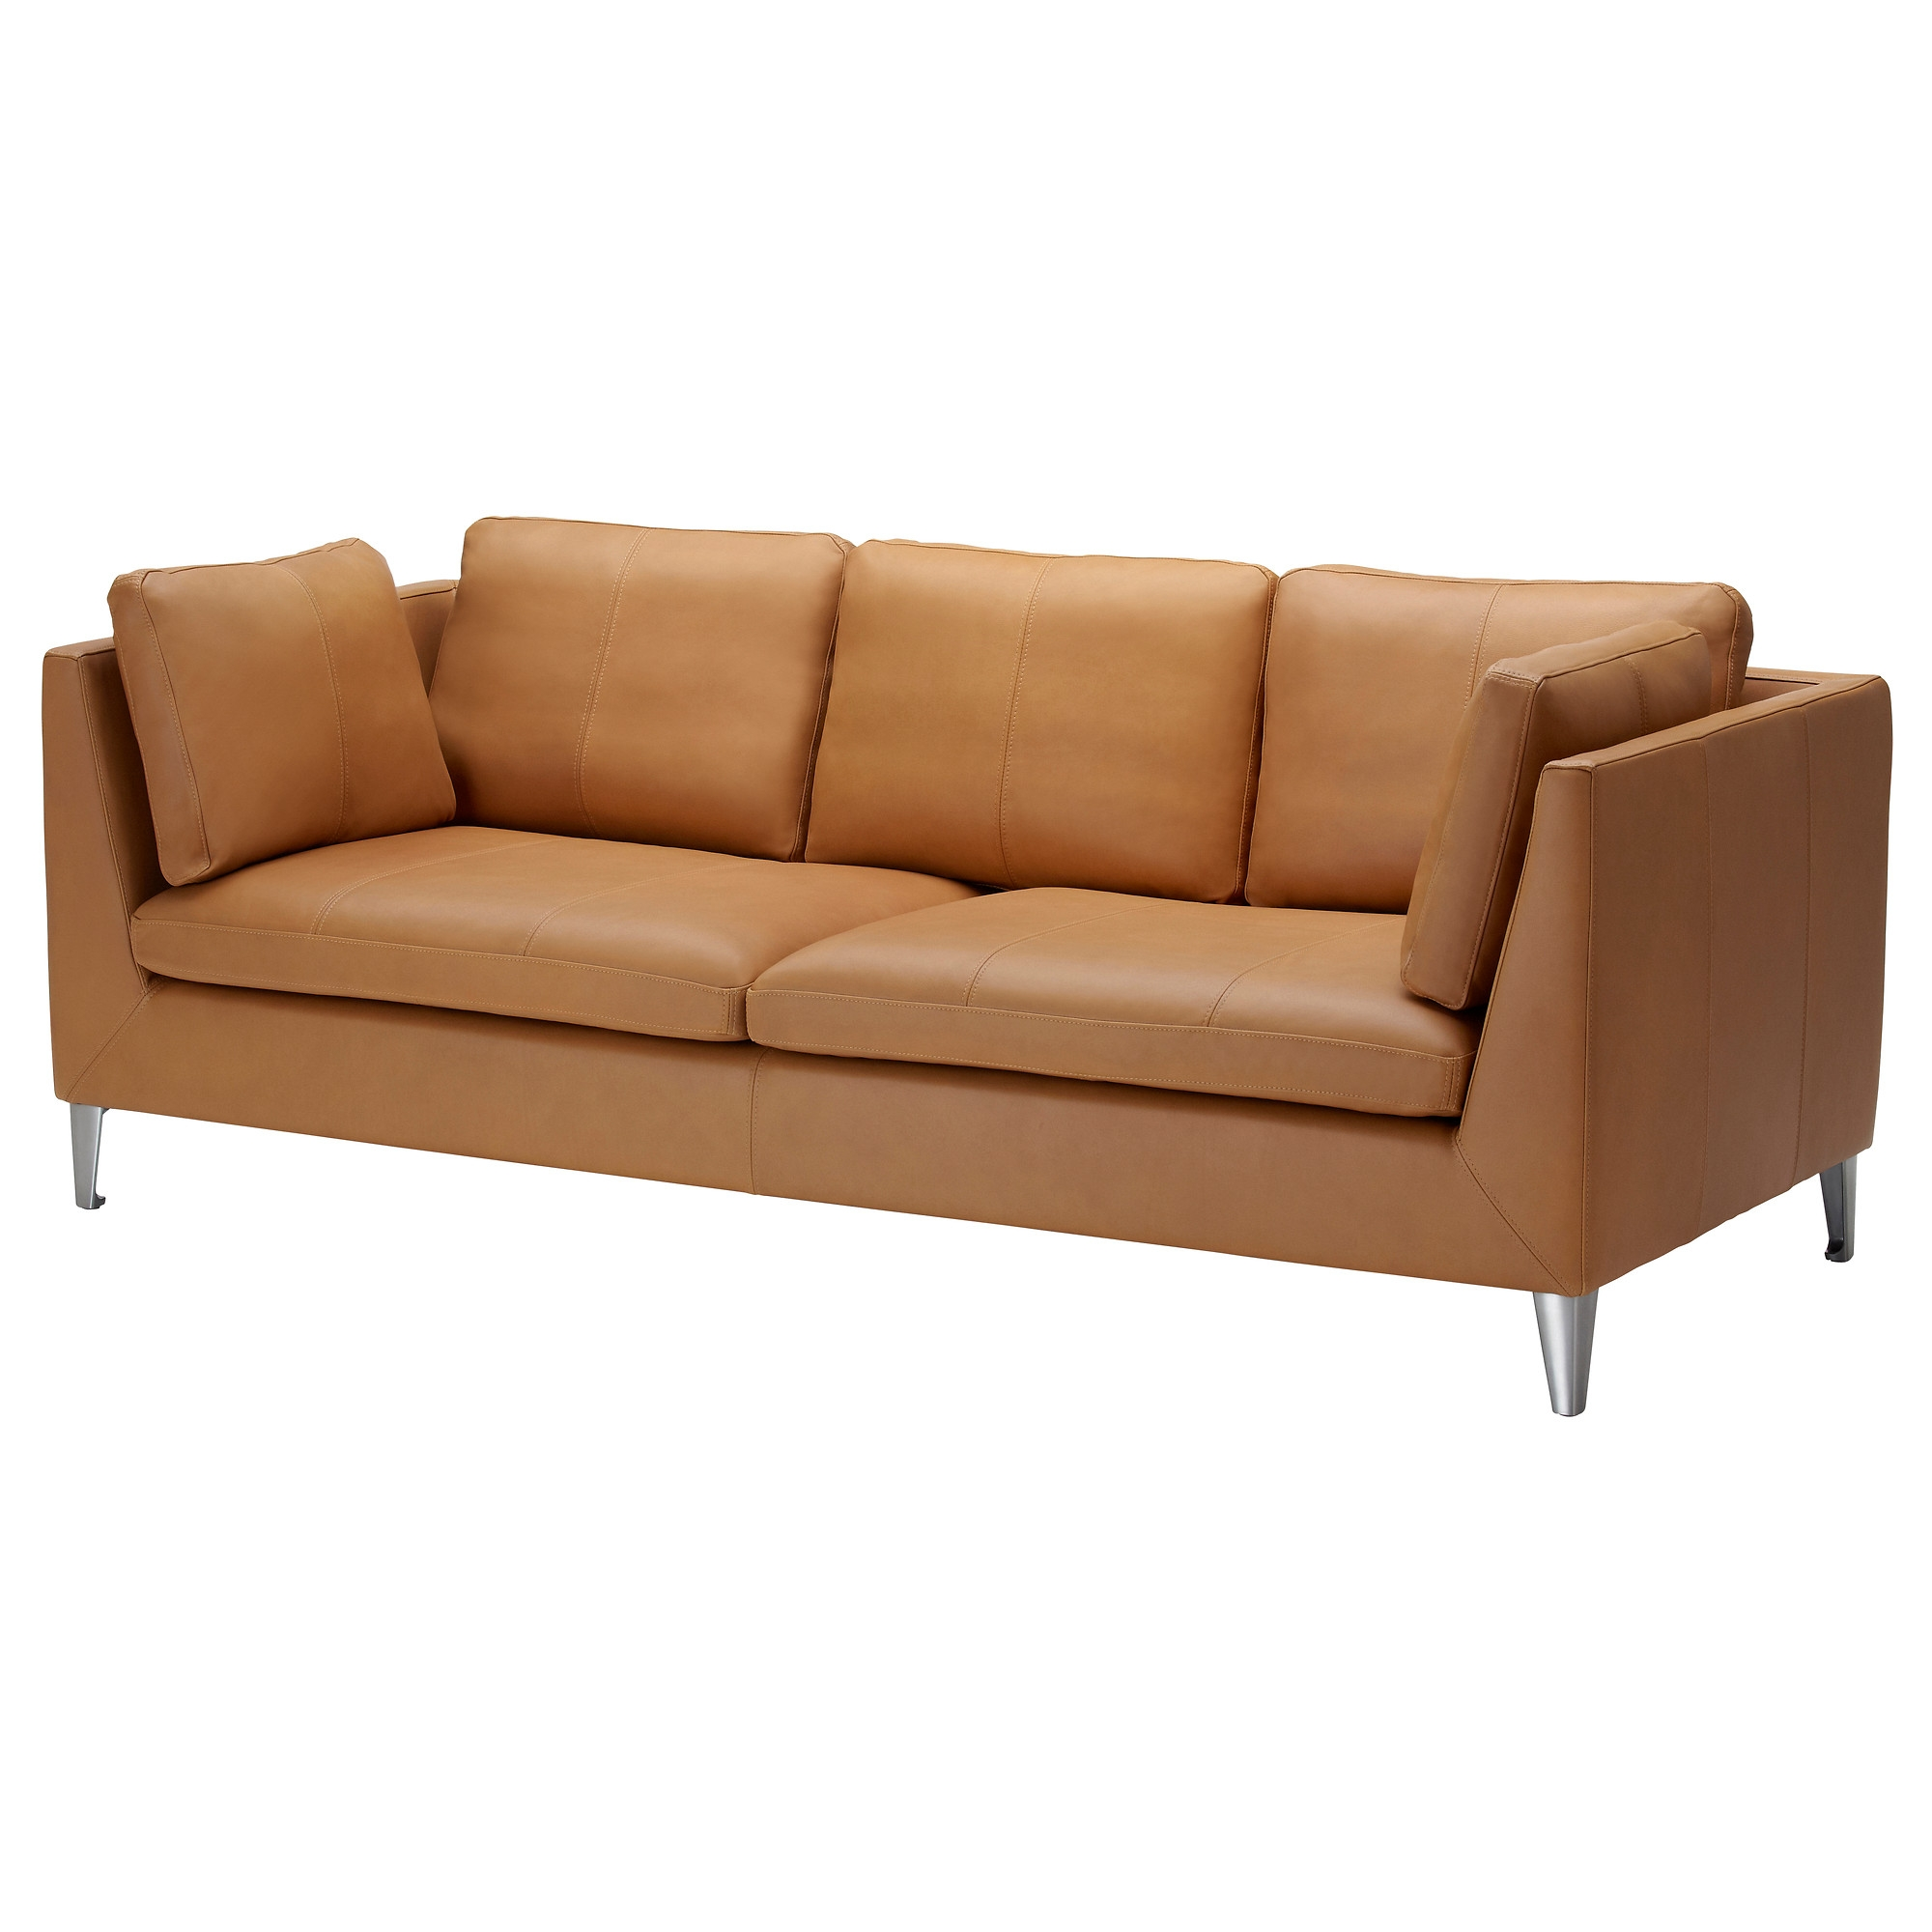 Sofa Inspiring Camel Leather Sofa 2017 Design Camel Leather Sofa Regarding Camel Colored Sectional Sofa (Image 14 of 15)